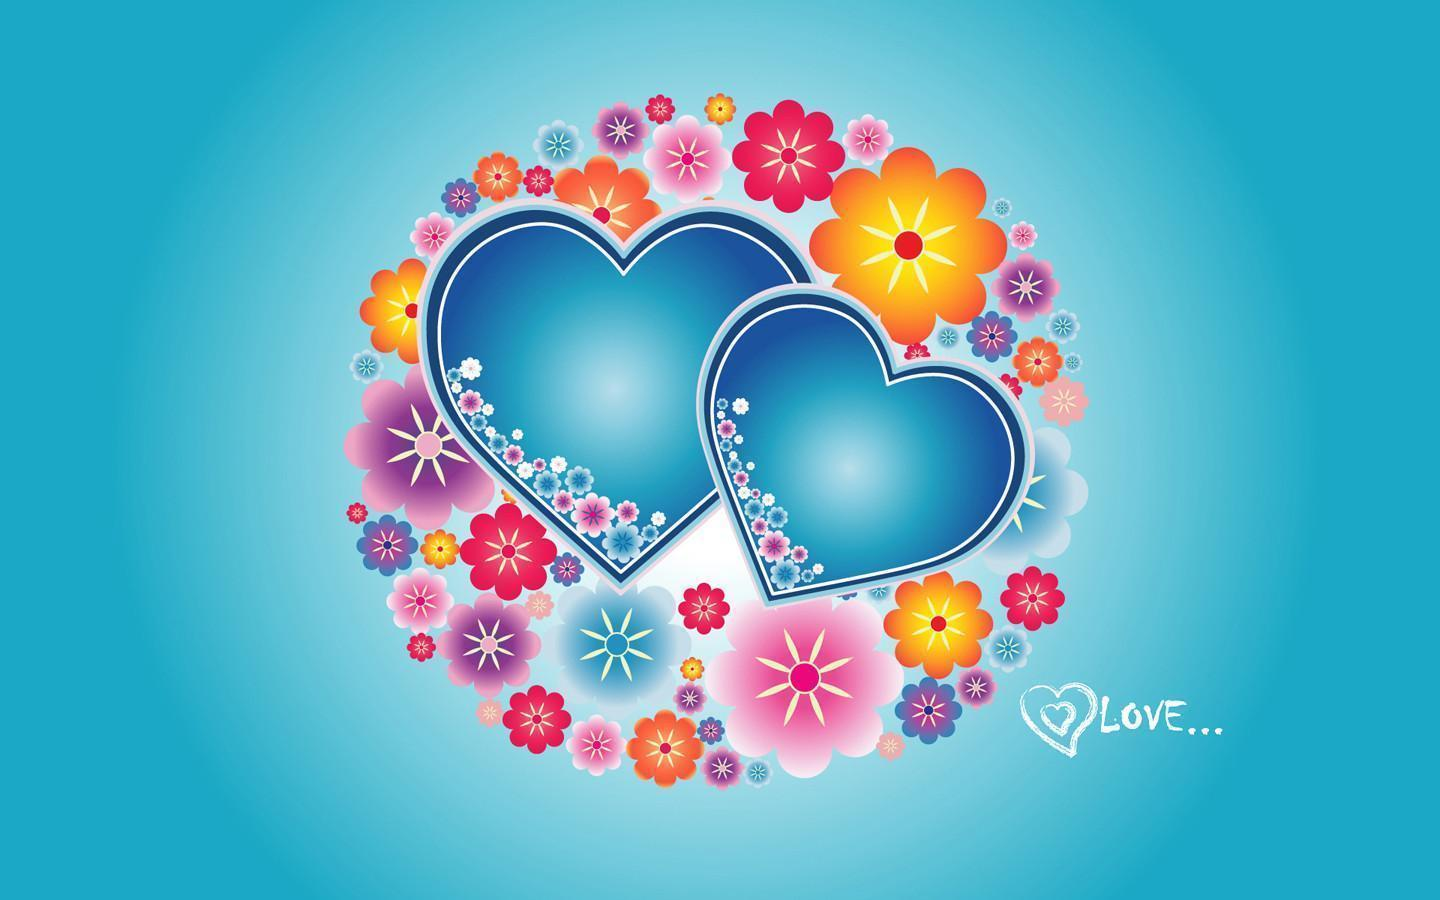 Love cute Heart Wallpaper : Love Heart Wallpapers HD - Wallpaper cave